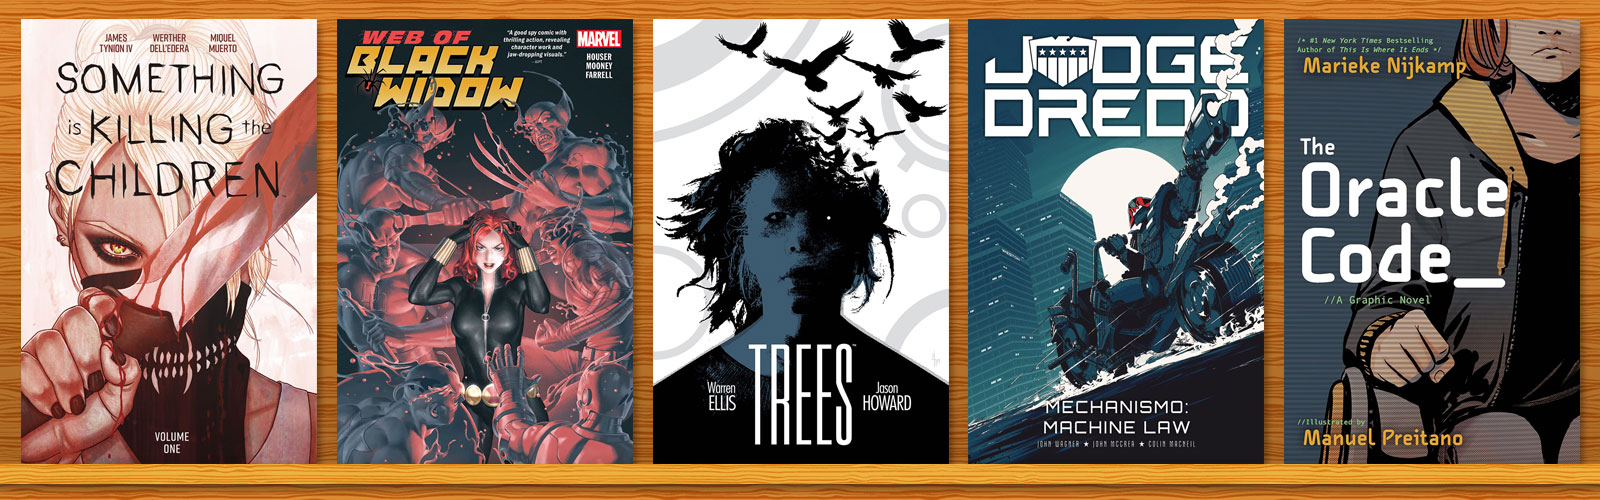 Graphic Novel Top 20 Chart: March 2020